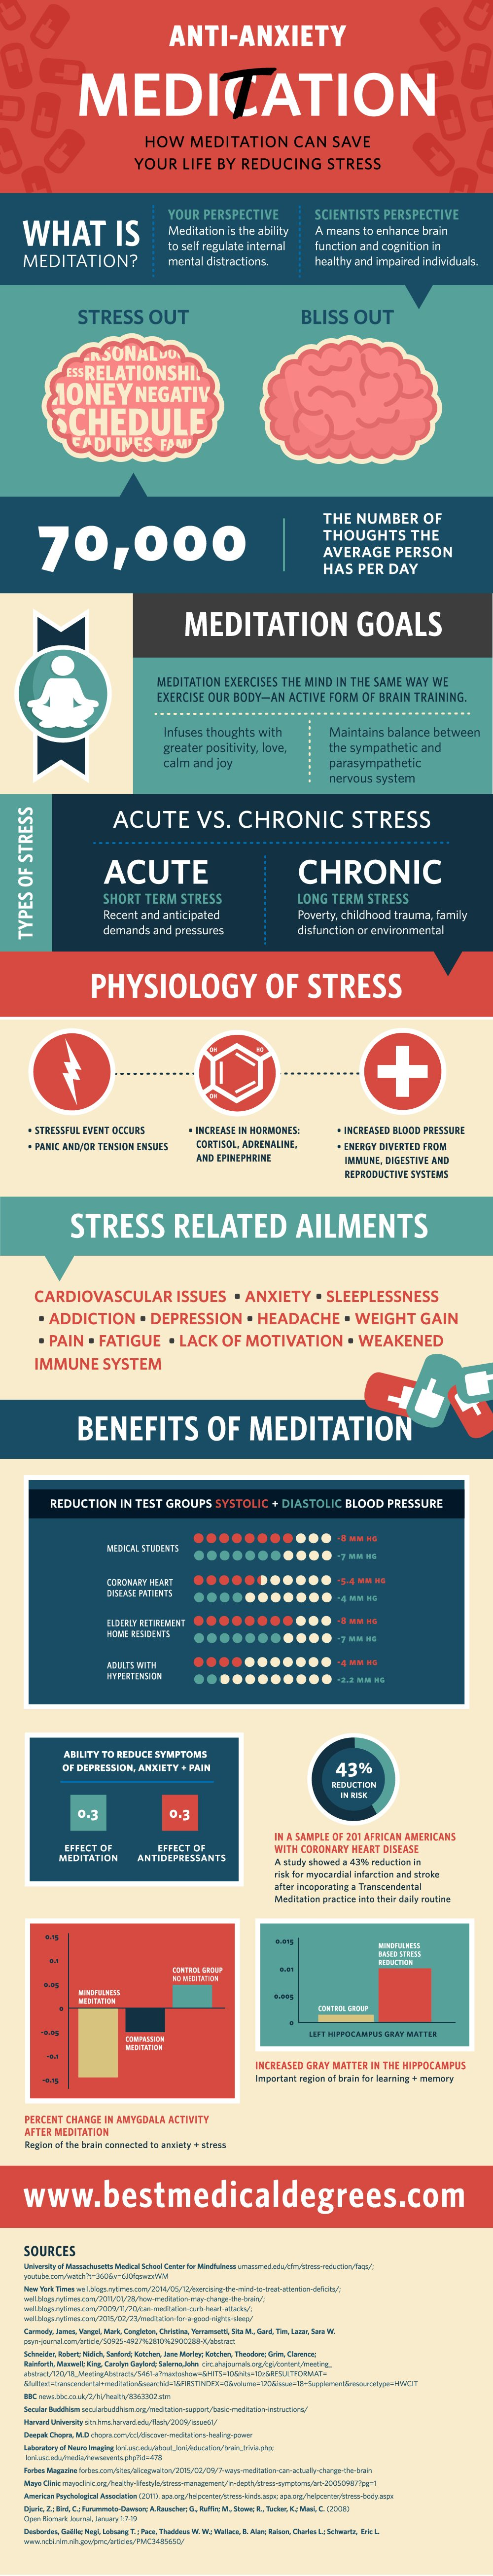 Stress and Meditation